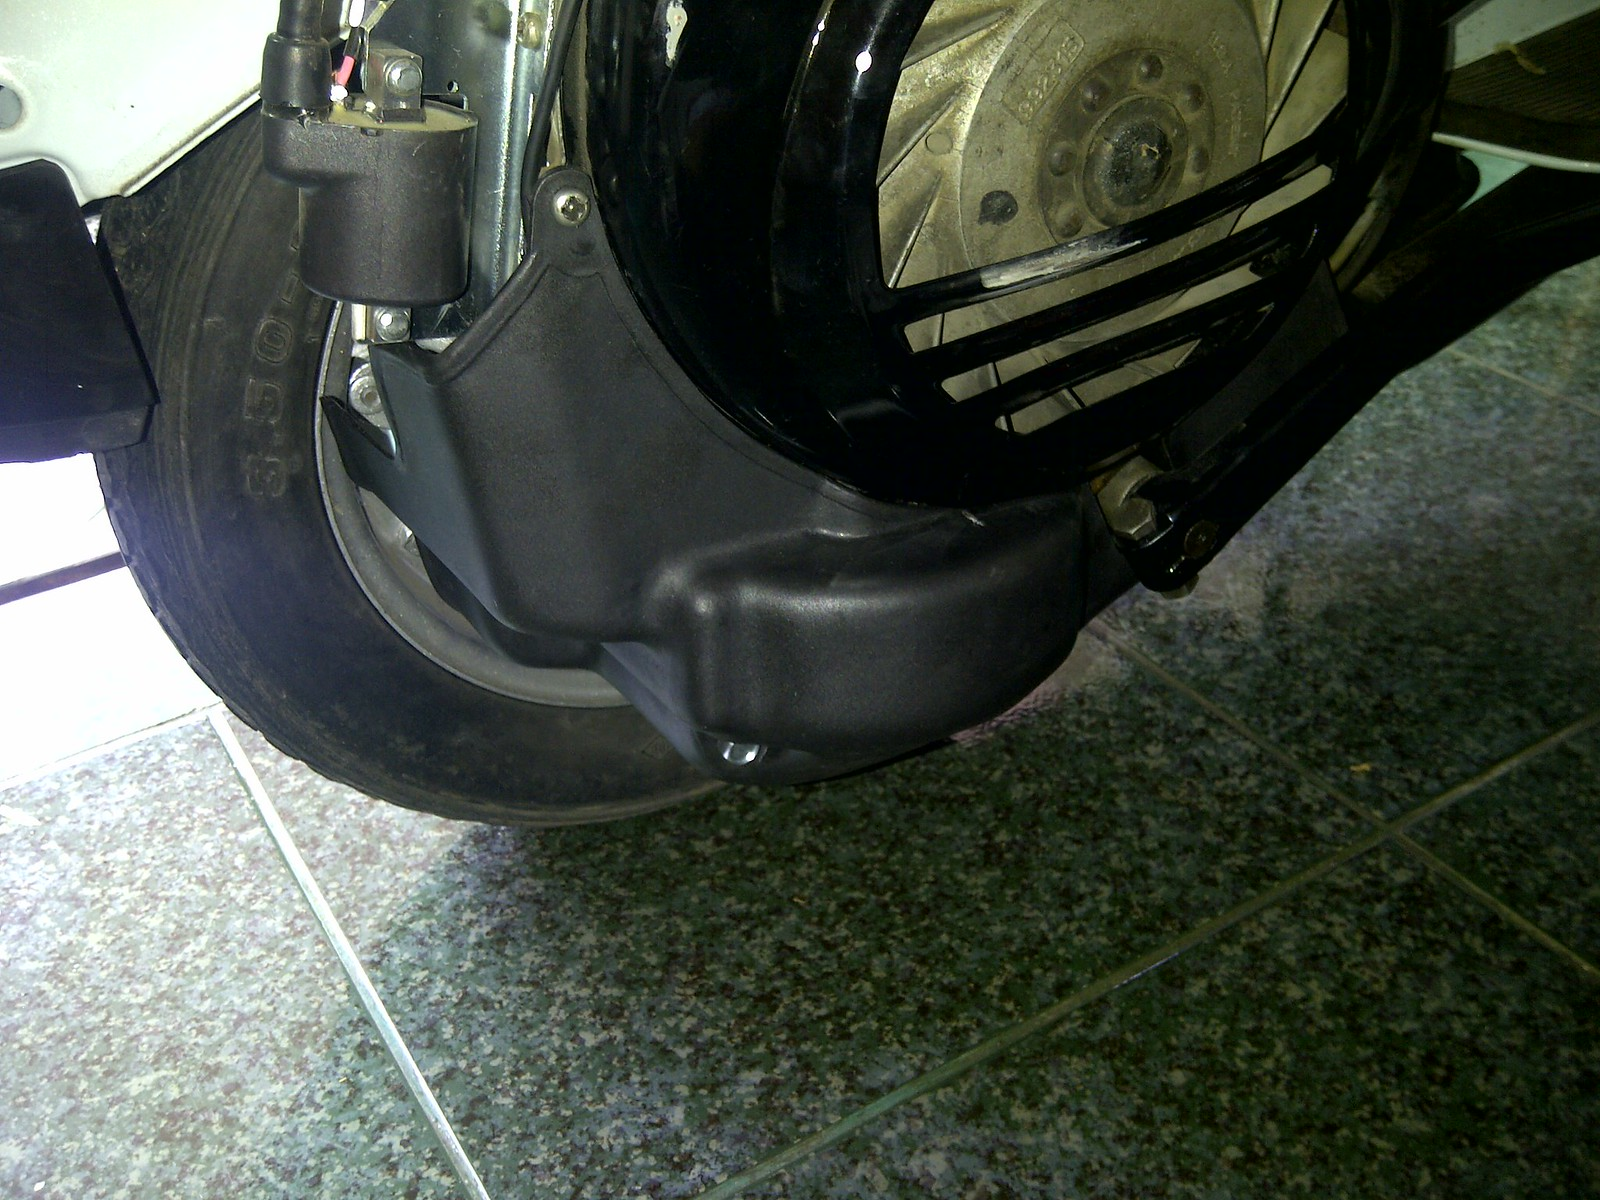 Wiring Diagram Vespa Super Px Dan Excell Auto Electrical 200 28 Exclusive 2